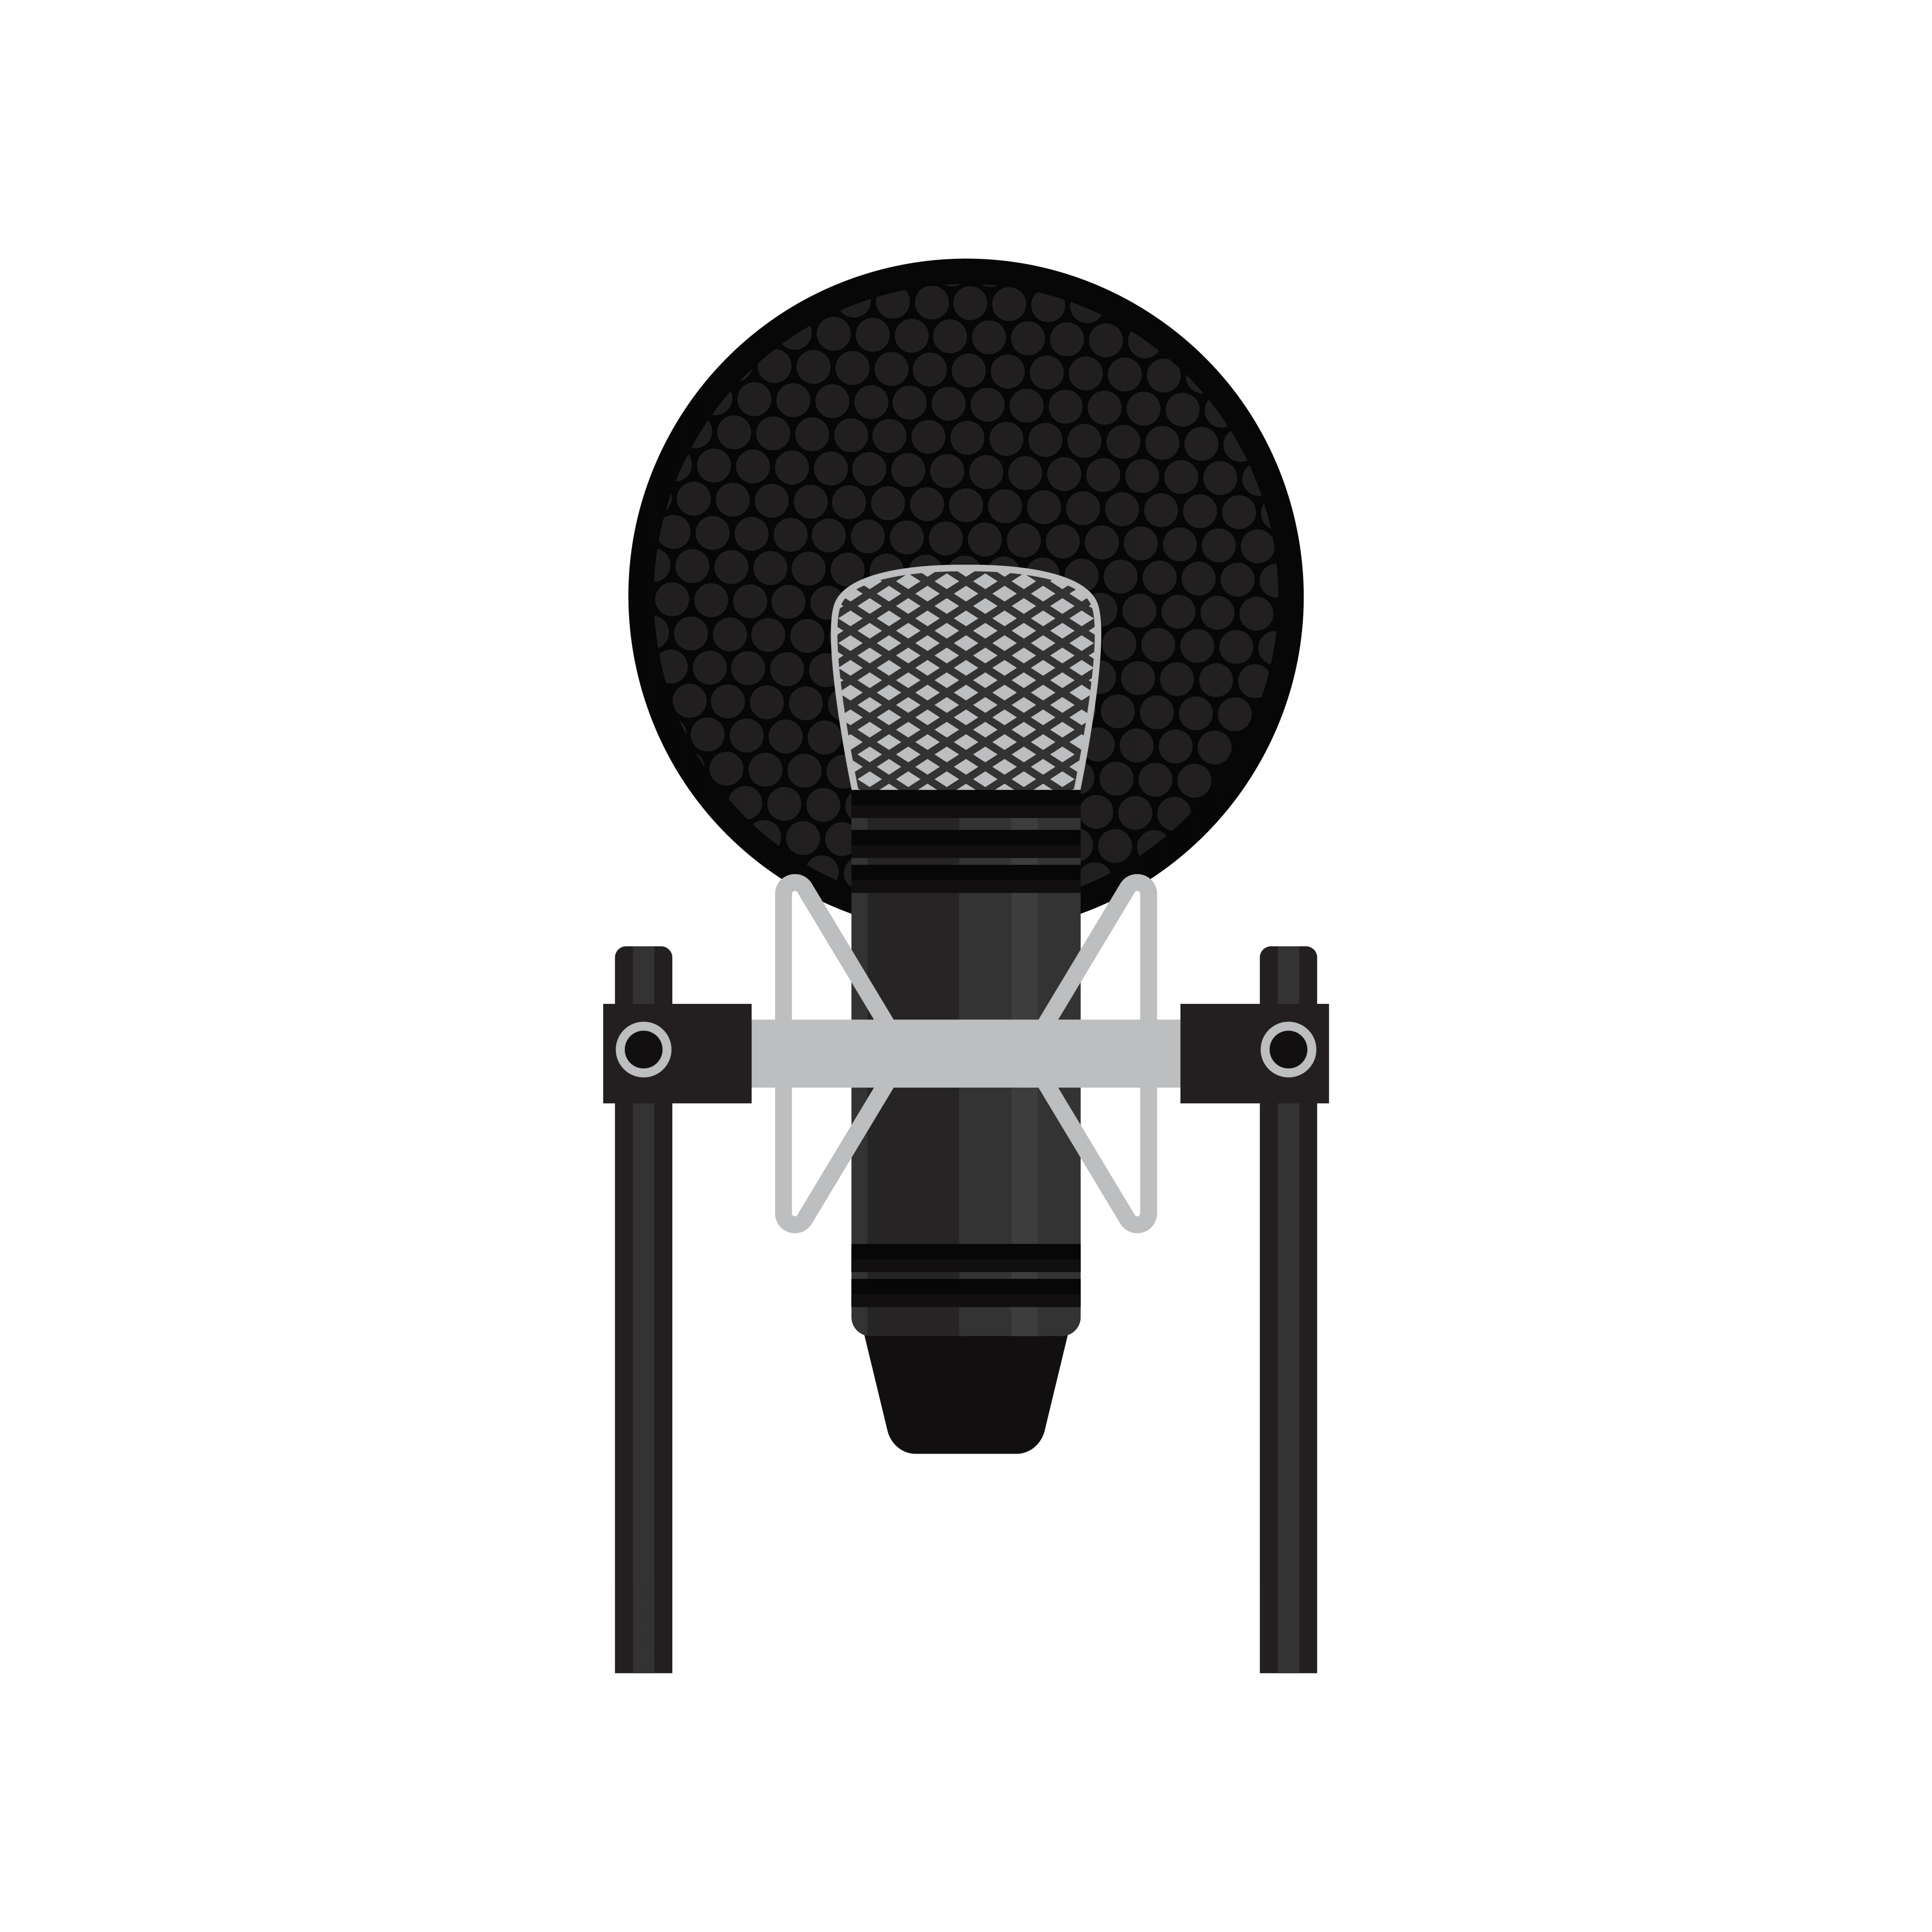 Mics Vector Designs: Microphone Isolated On White Background